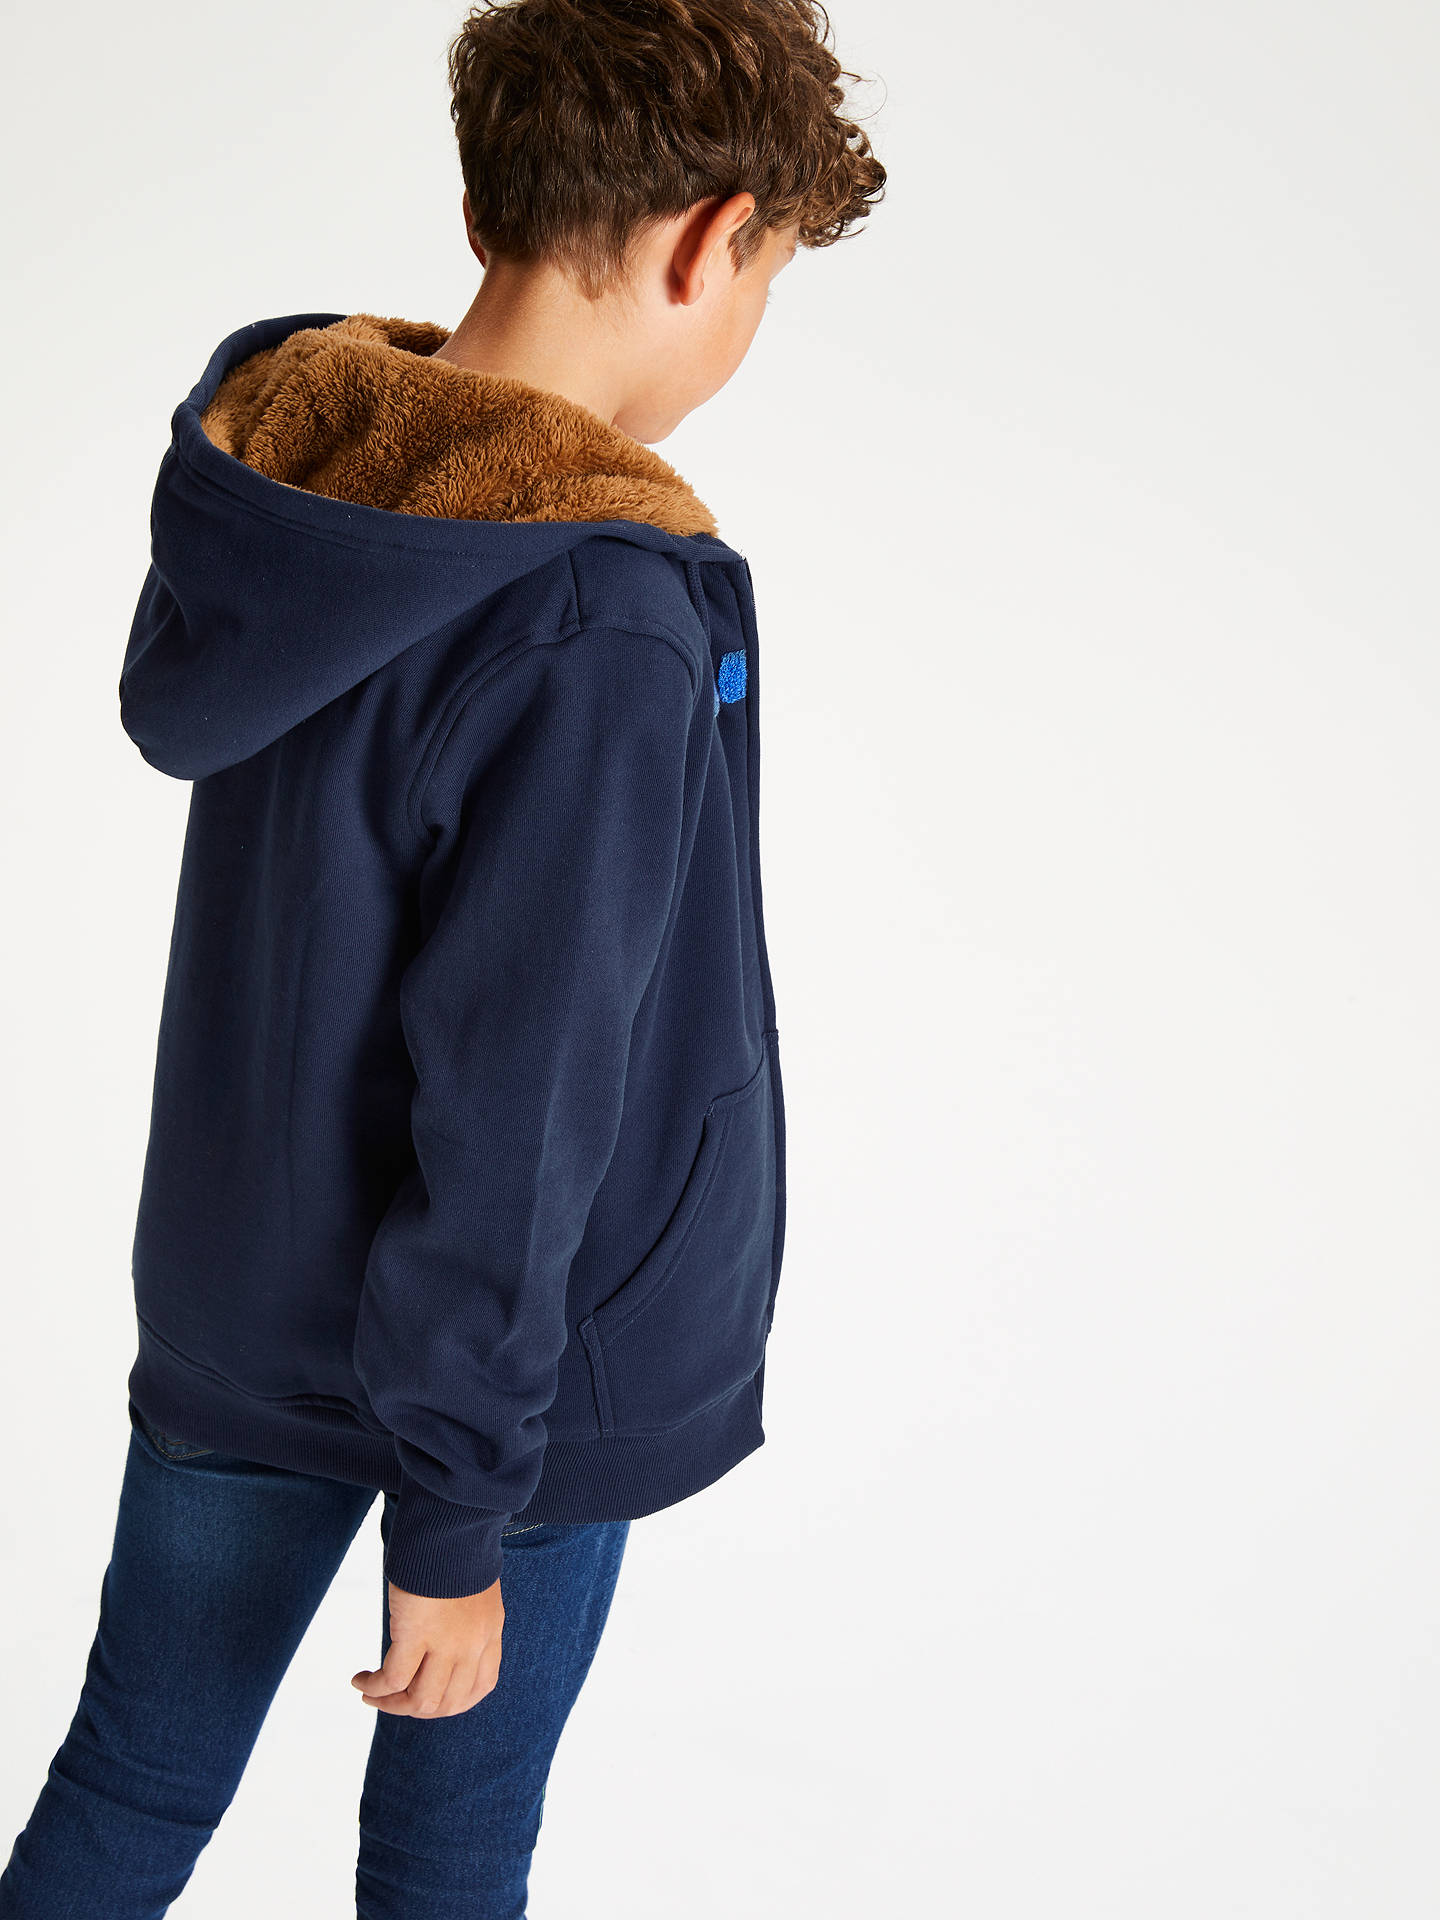 Buy Animal Boys' Scout Sherpa Lined Hoodie, Navy, 7-8 years Online at johnlewis.com